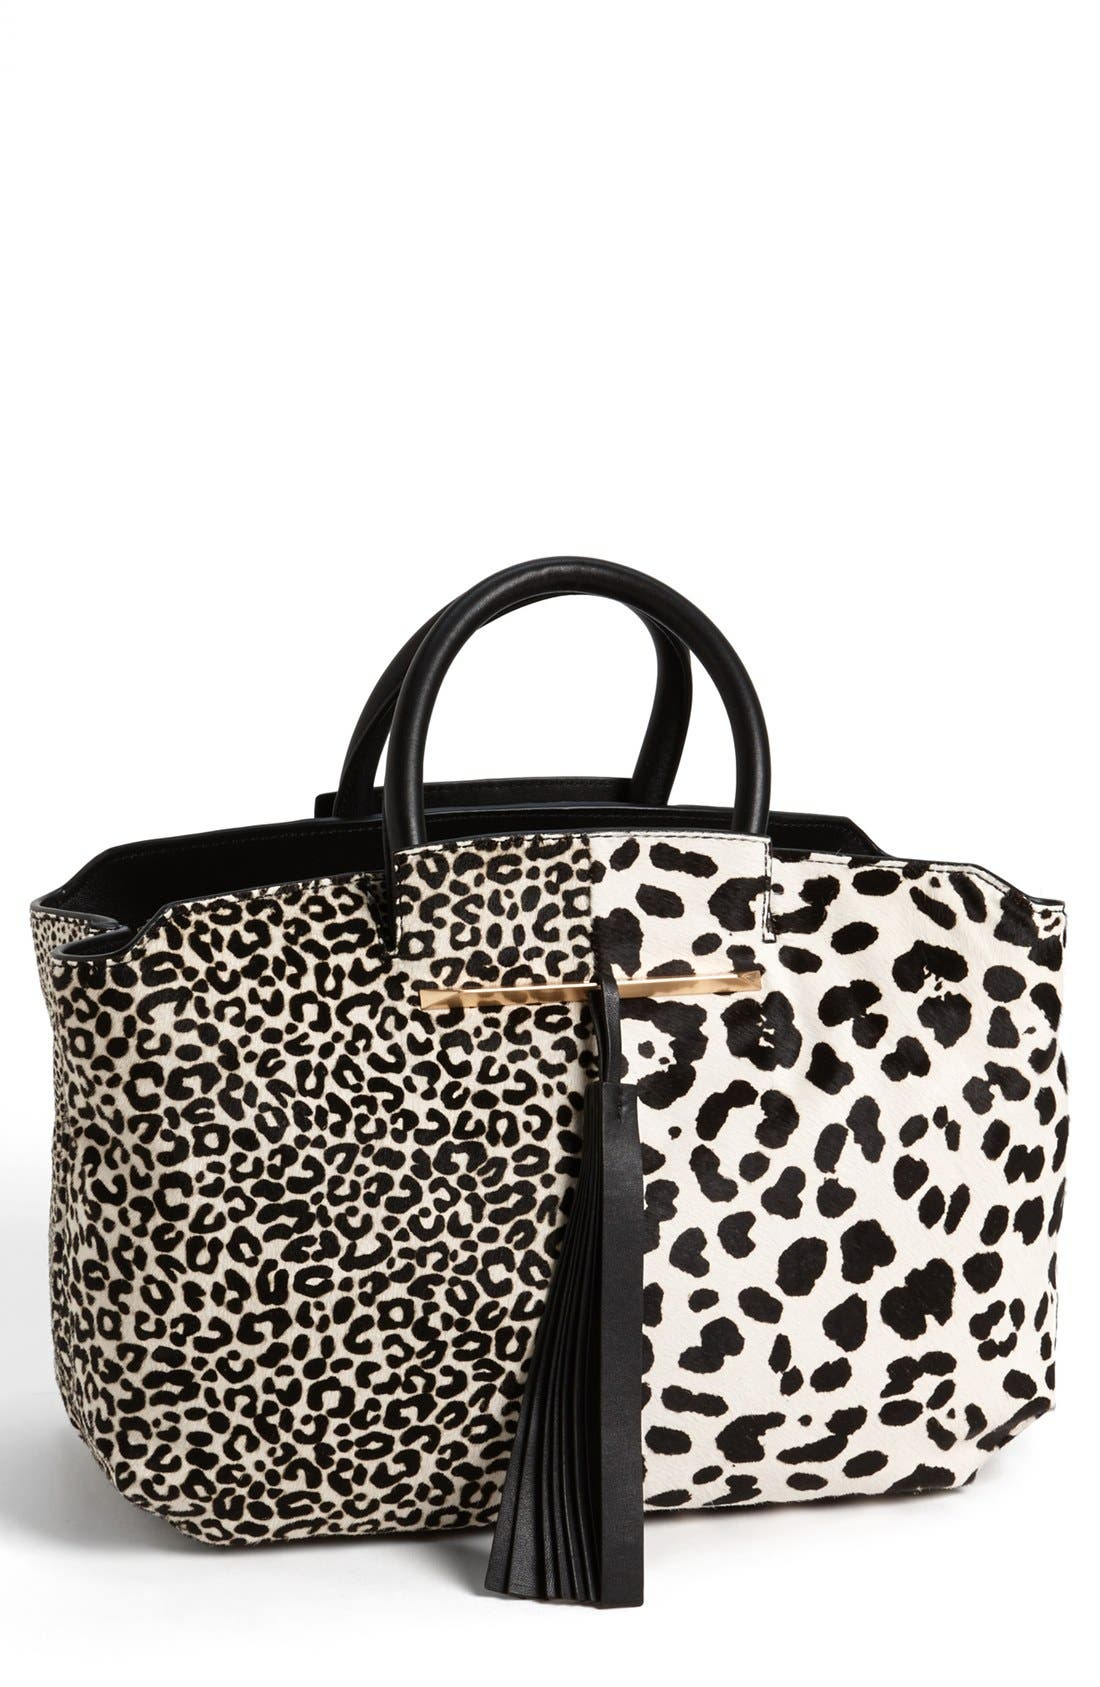 Main Image - B Brian Atwood 'Gena' Animal Pattern Calf Hair Tote, Medium